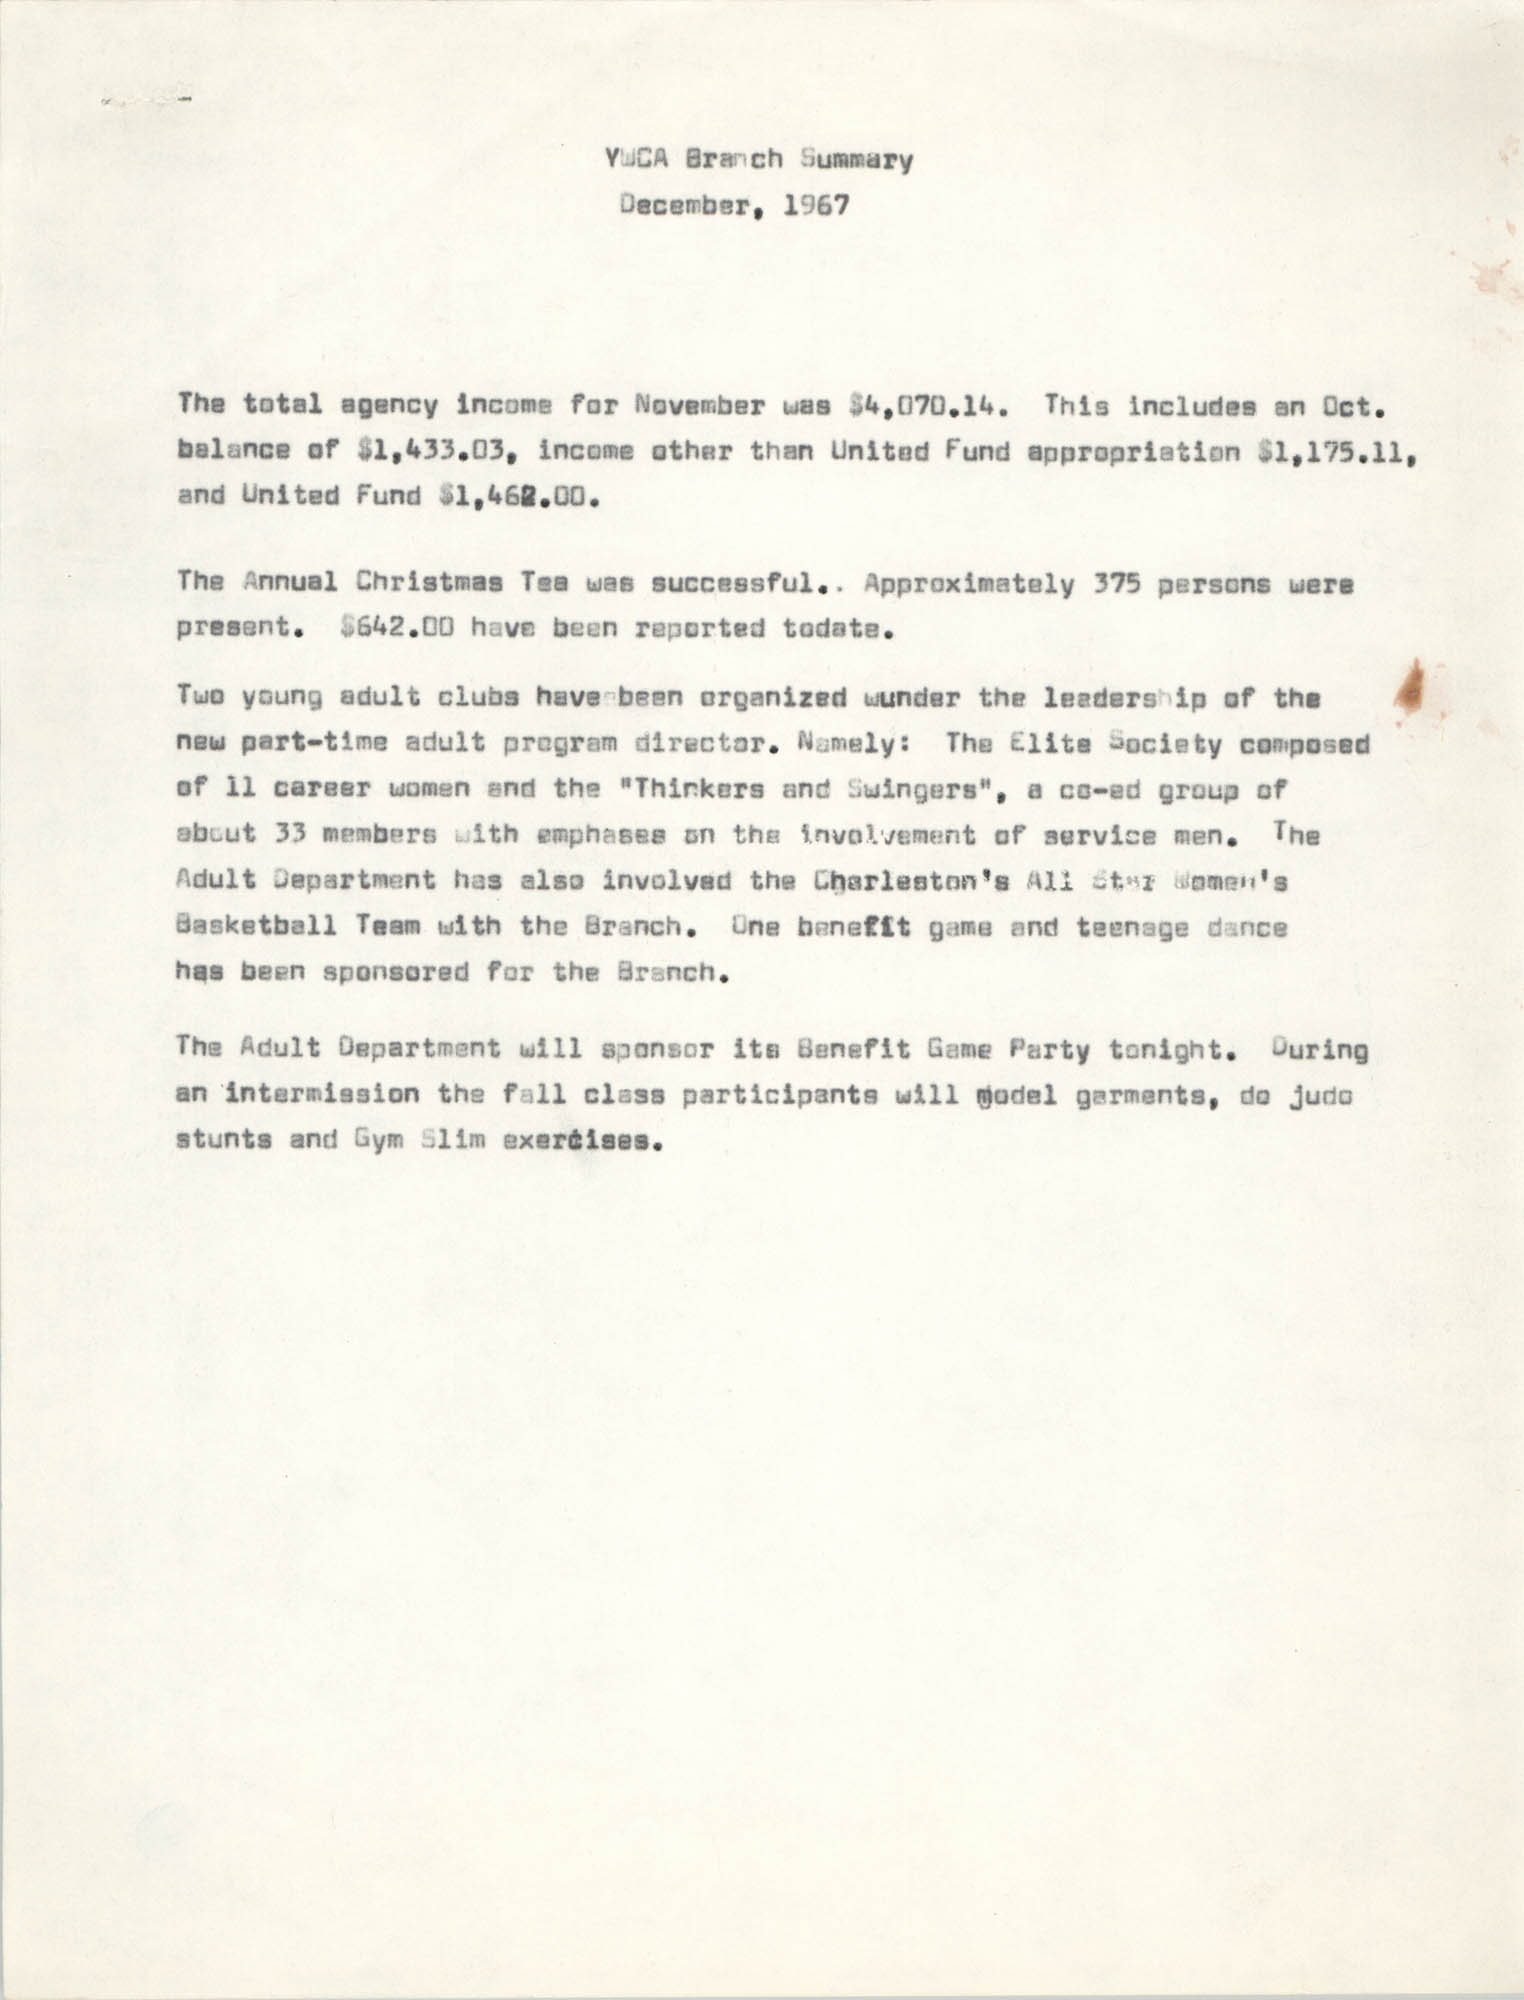 Coming Street Y.W.C.A. Summary Report, December 1967